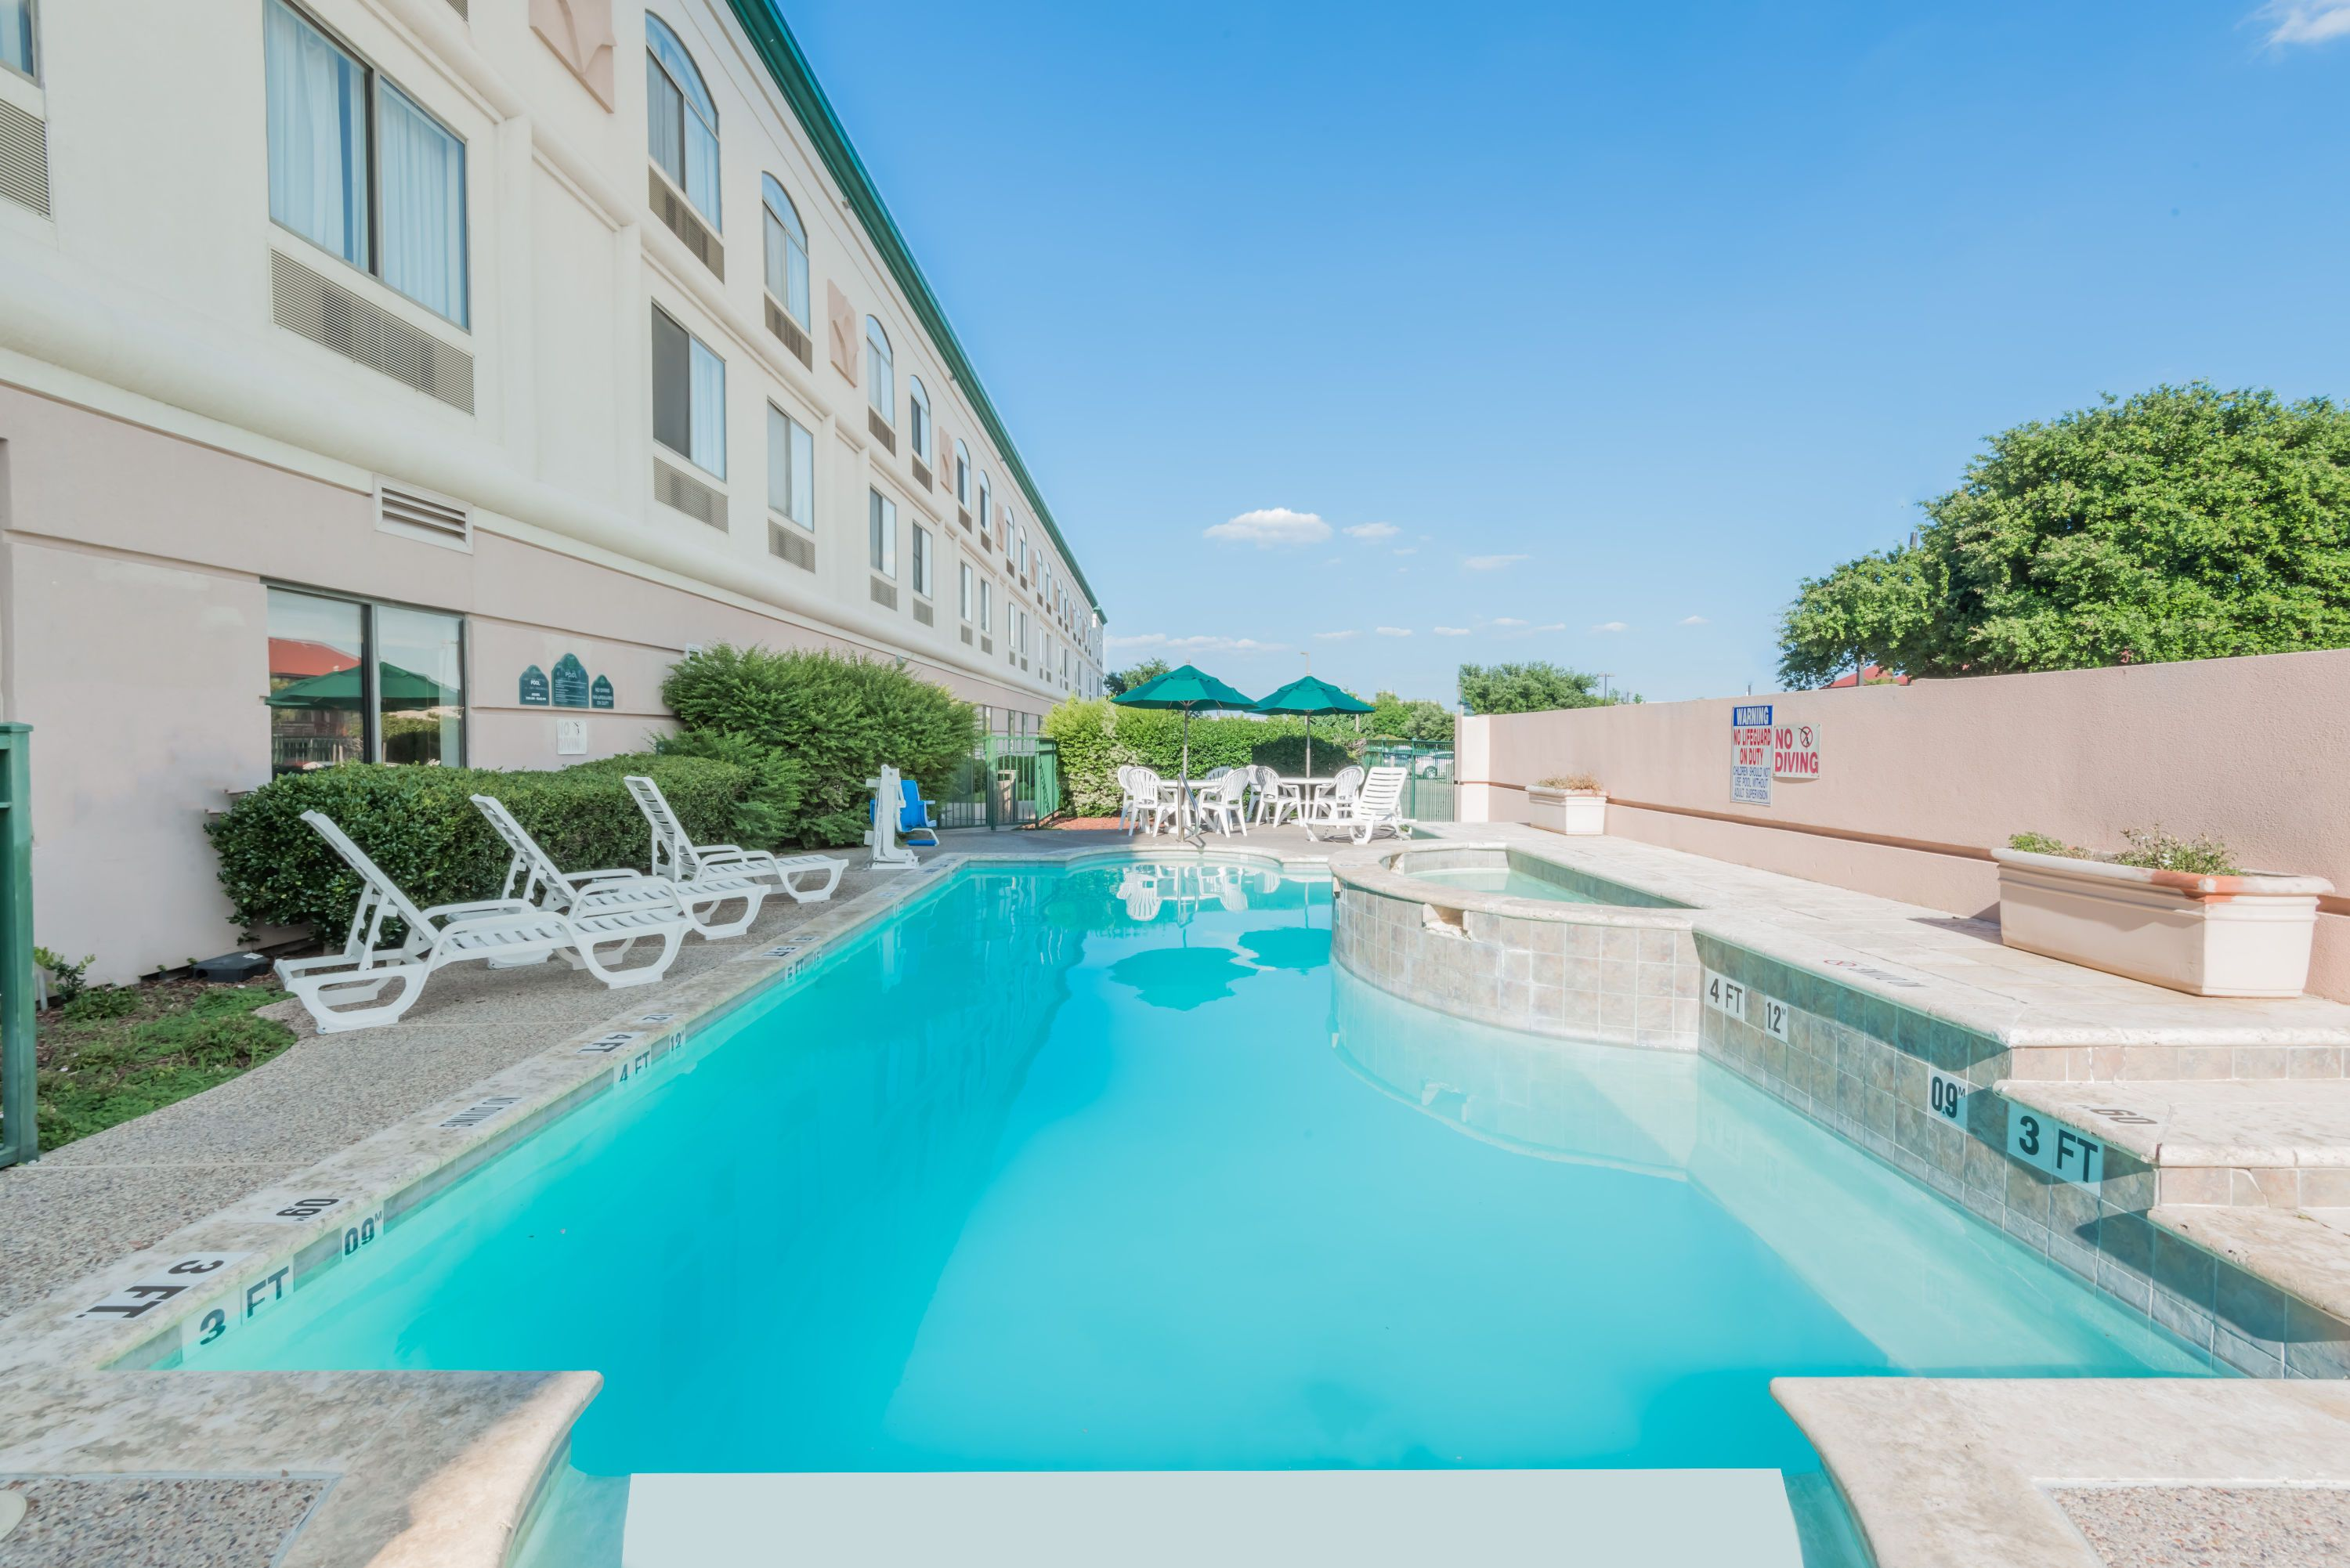 Reserve Your Stay At Hotels Near Six Flags Over Texas Dallas Which Can Cater To Nearly Any Size Group To Book Hotel I Booking Hotel Hotel Six Flags Over Texas